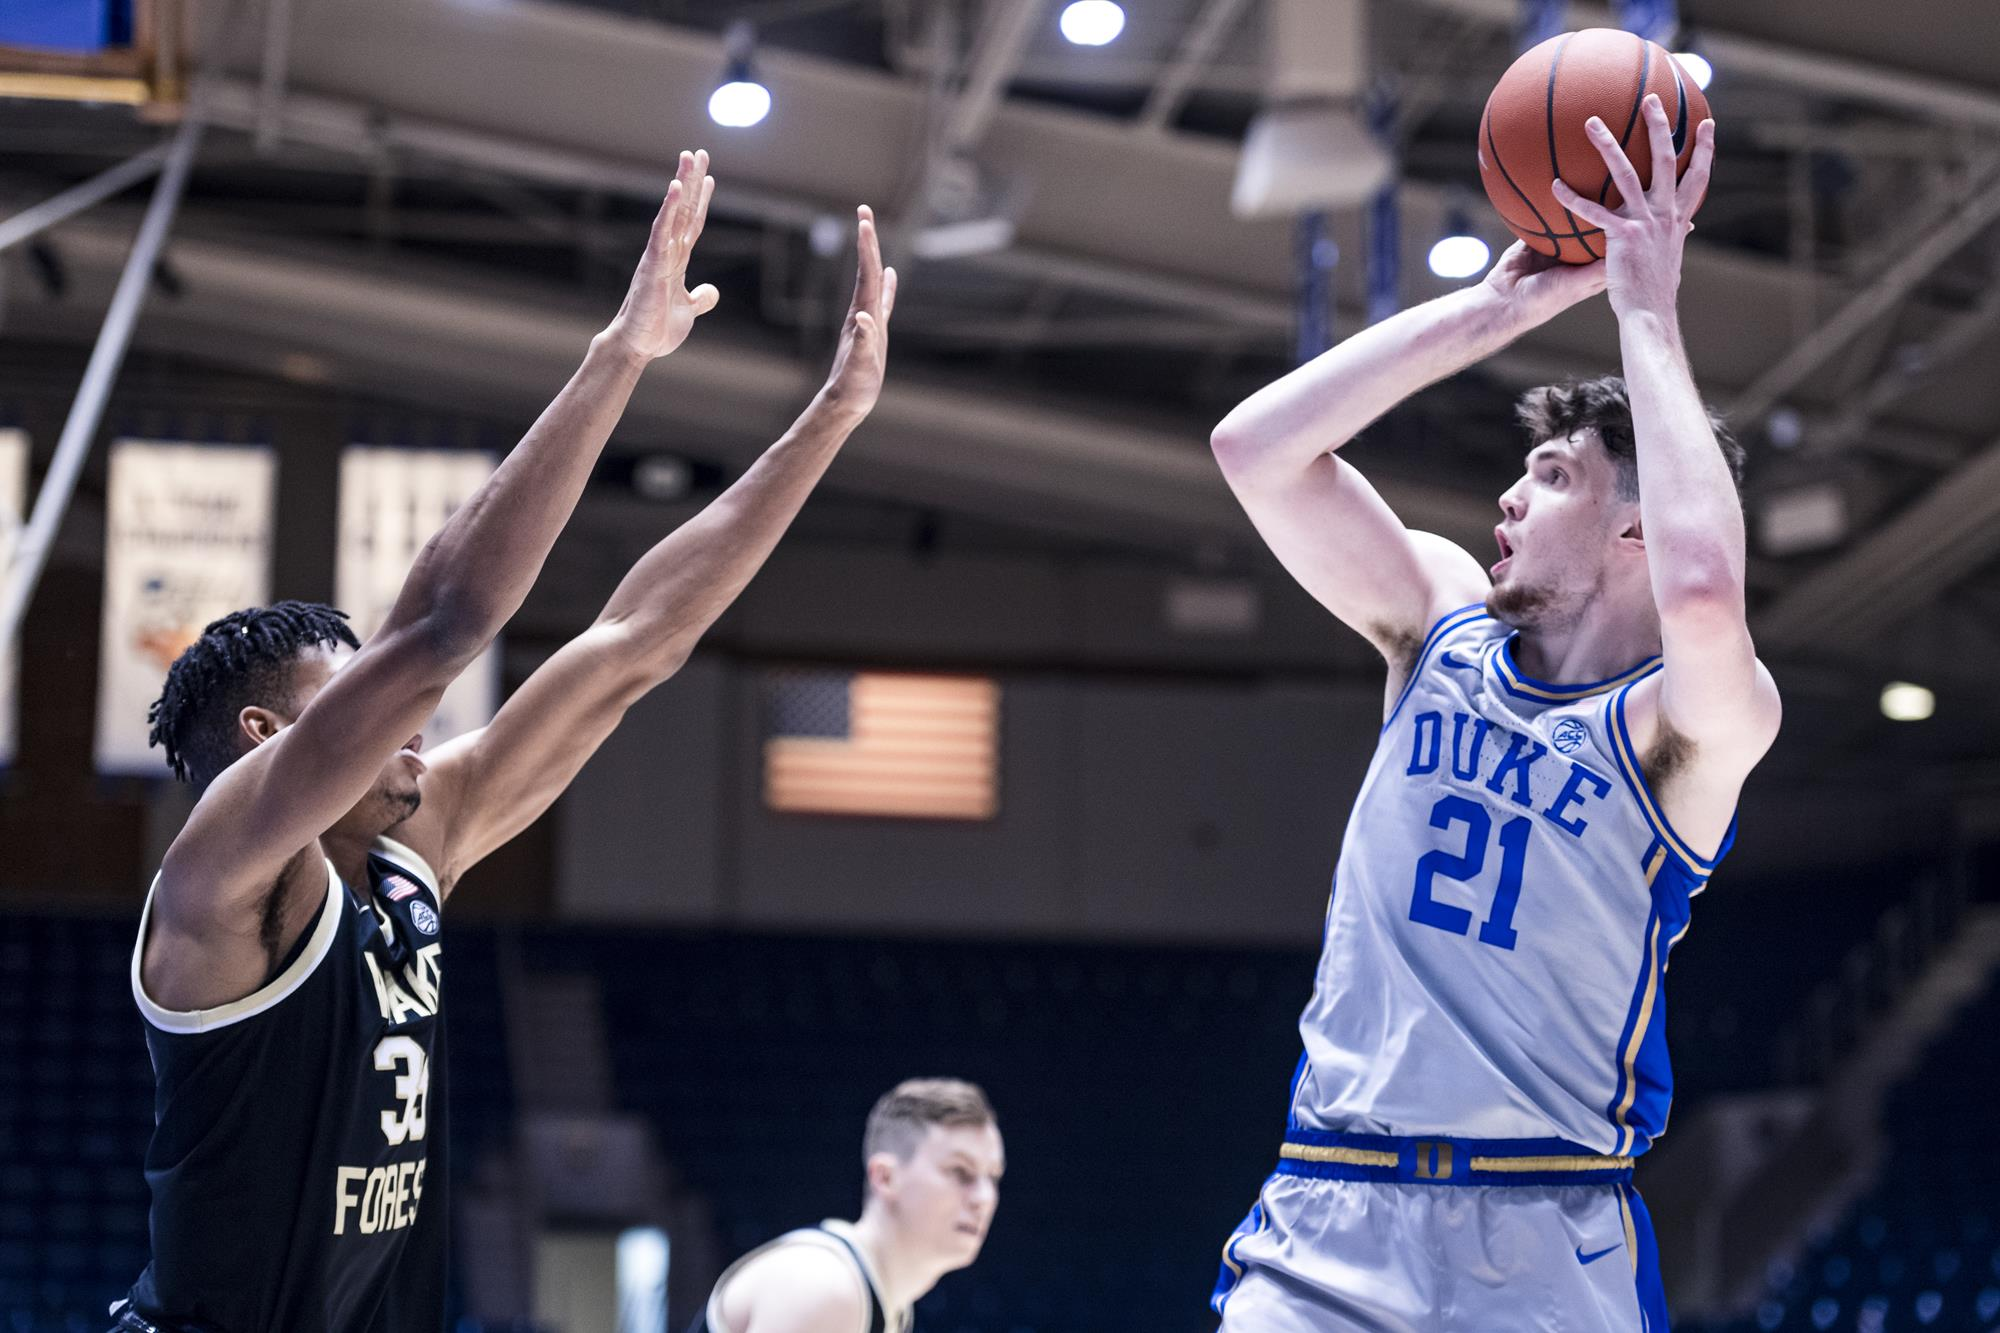 Wake Forest vs Duke 21 who is up for the shot